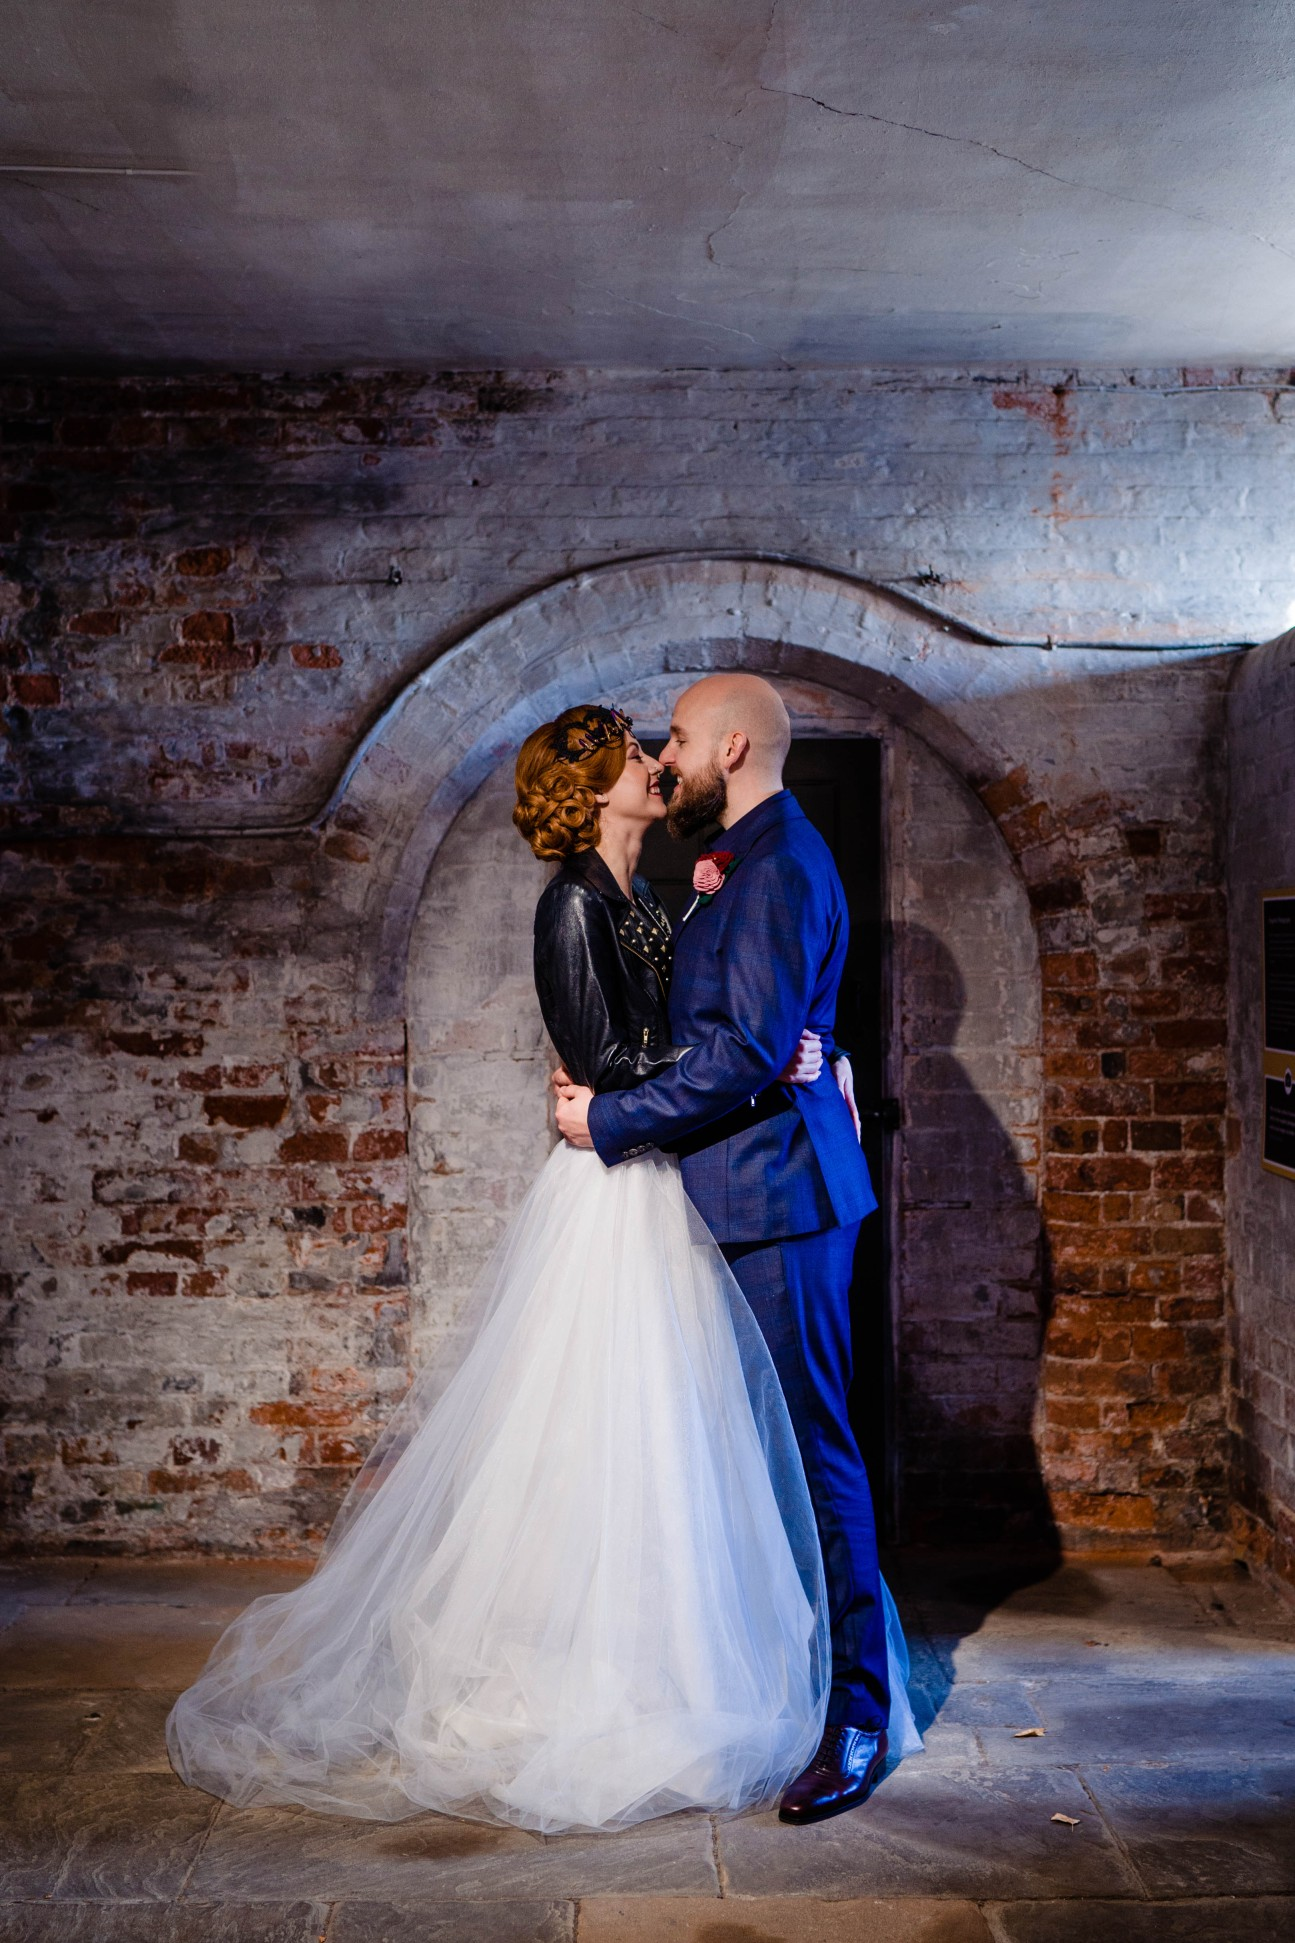 A gothic wedding - national justice museum wedding - alternative wedding - Vicki Clayson Photography (3)